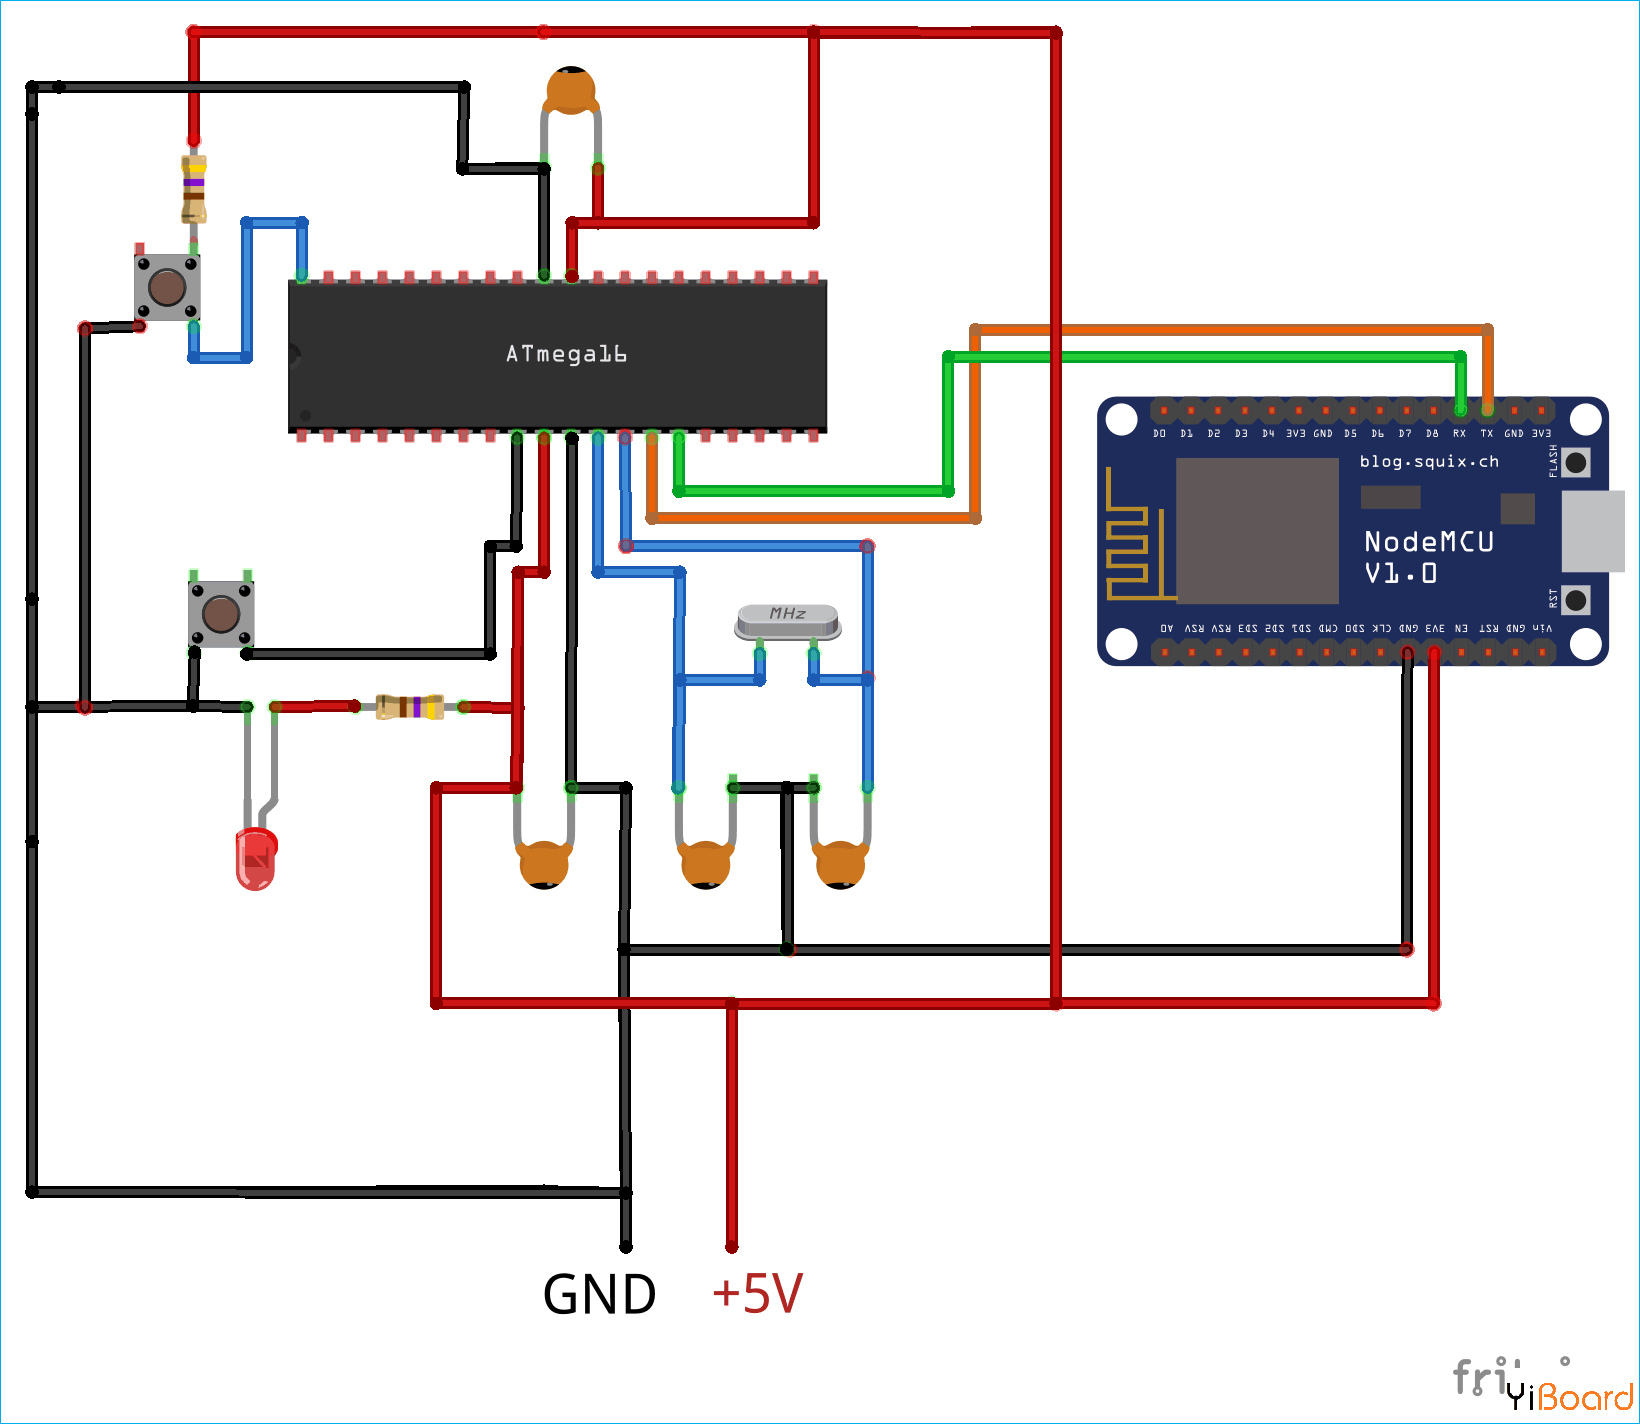 Circuit-Diagram-Interfacing-ESP8266-NodeMCU-with-AVR-Microcontroller-ATmega16.png